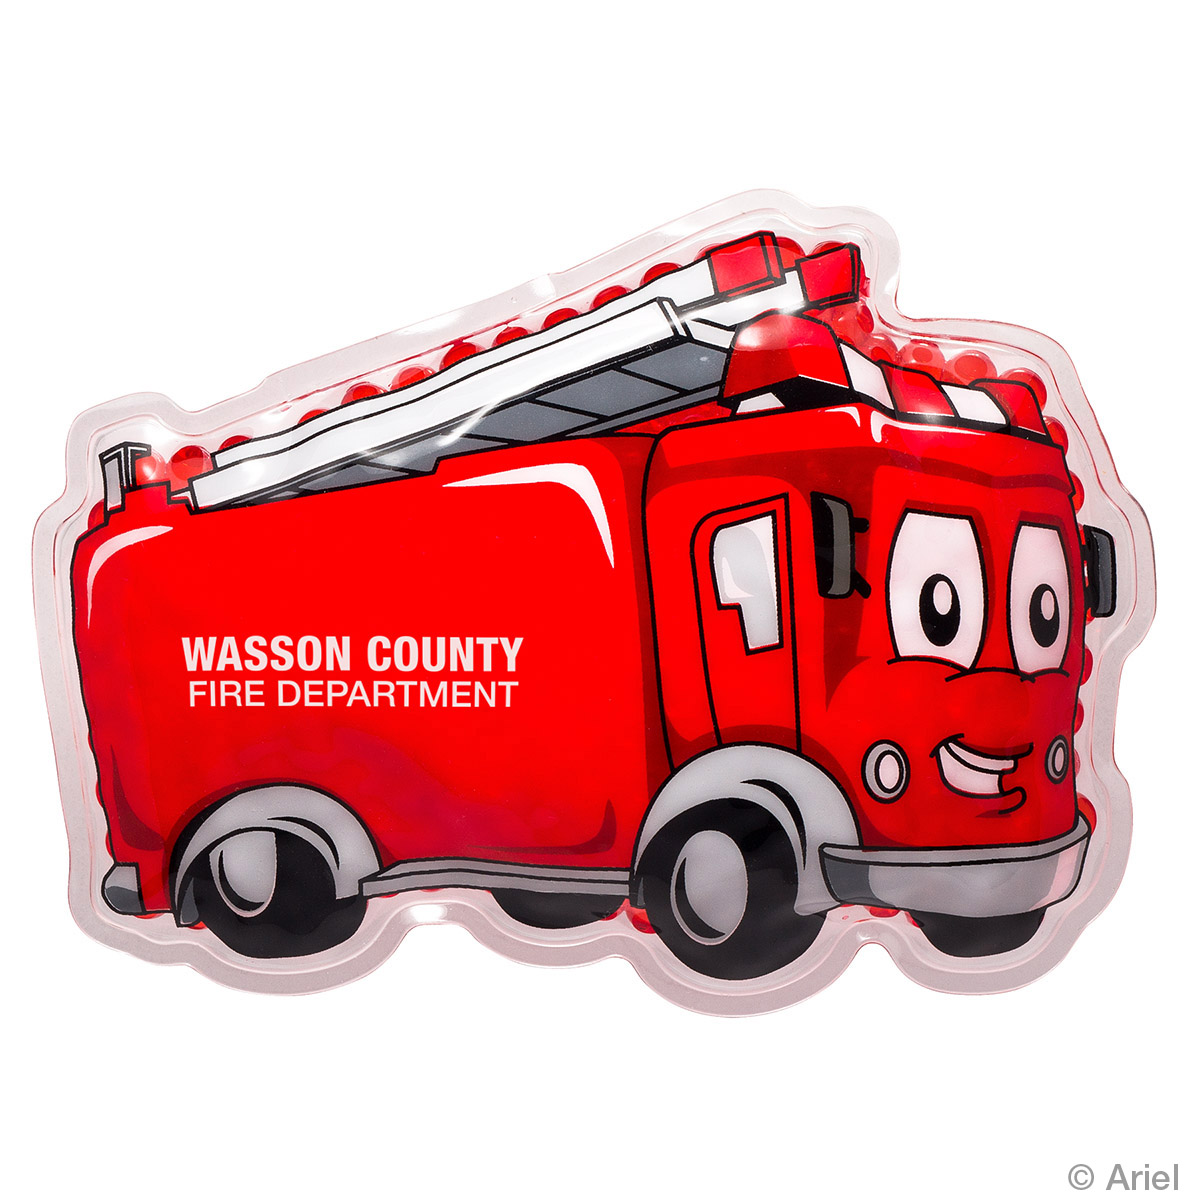 Fire Truck Hot/Cold Pack, WHF-FT17 - 1 Colour Imprint